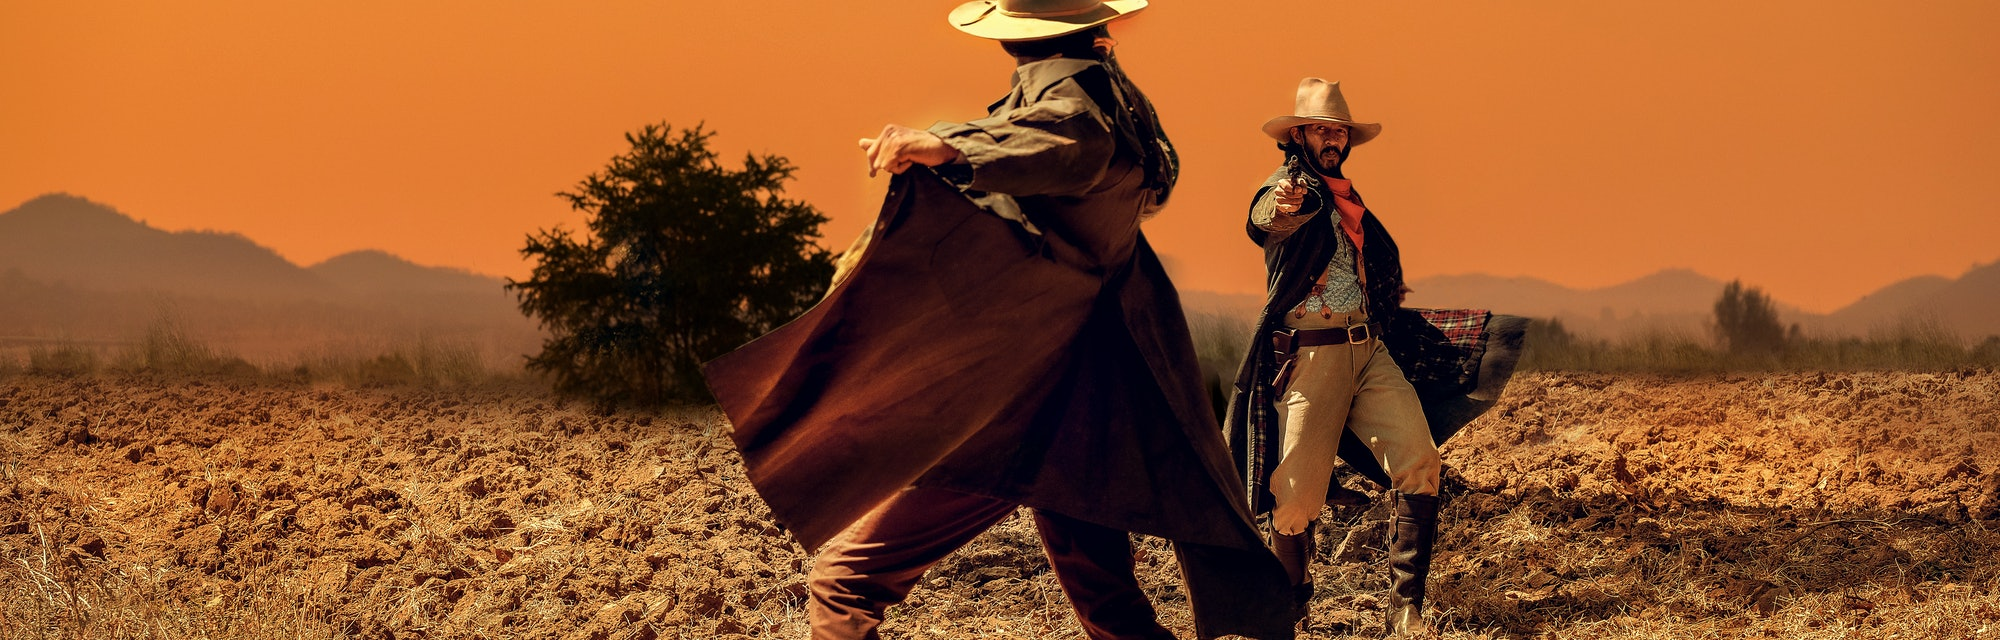 Cowboy Life: pistol shooting in a cowboy action shooting competition under sunset ,duel between cowboys. affair of honor